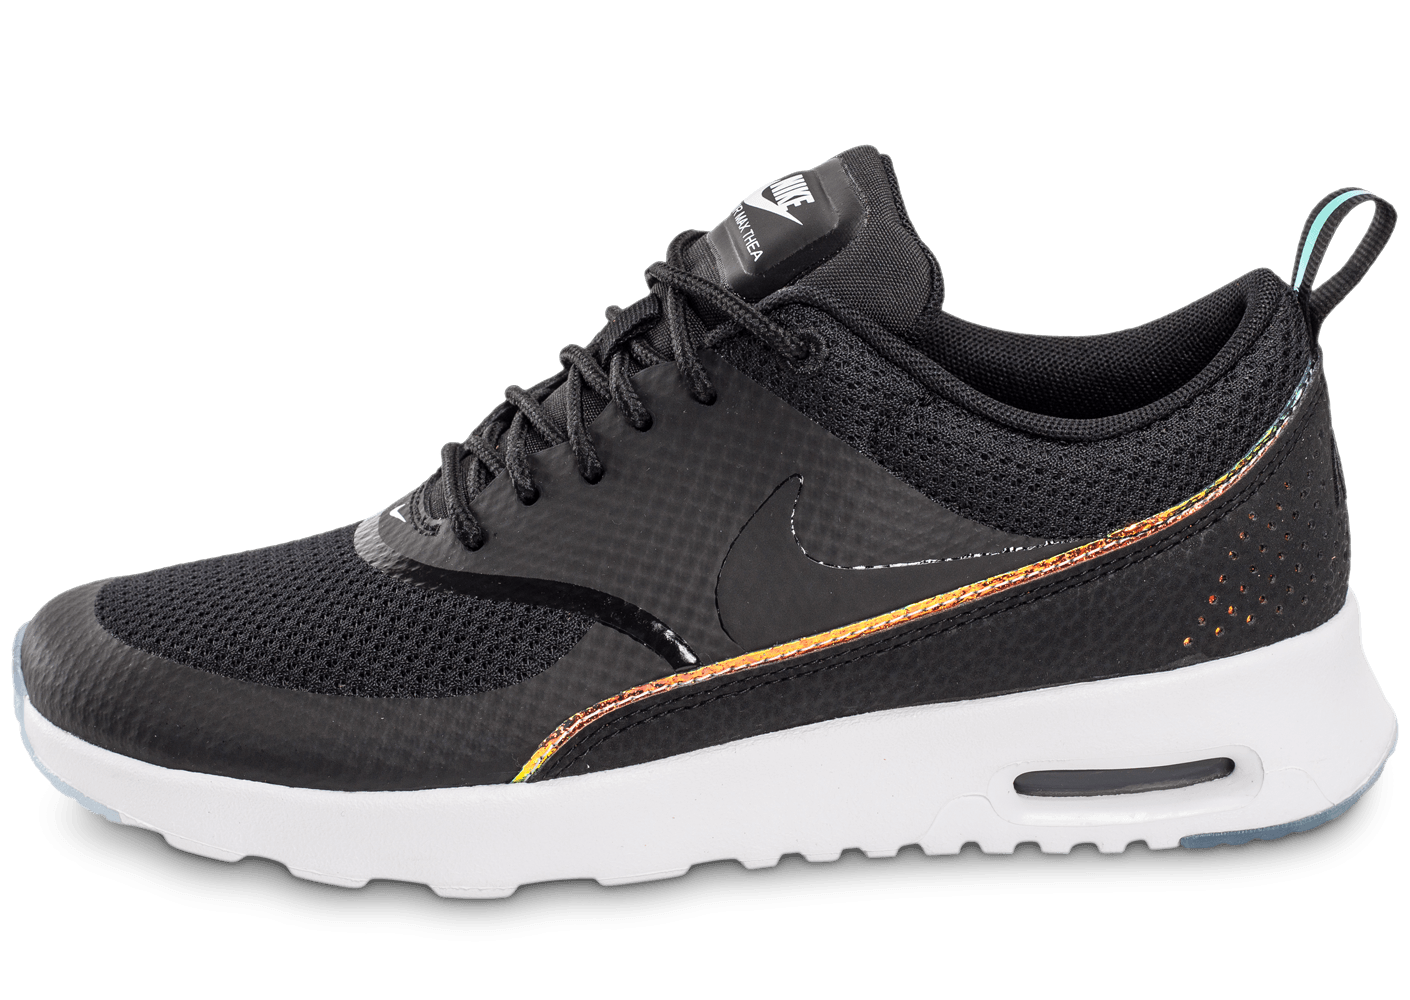 nike air max thea premium noire chaussures chaussures chausport. Black Bedroom Furniture Sets. Home Design Ideas